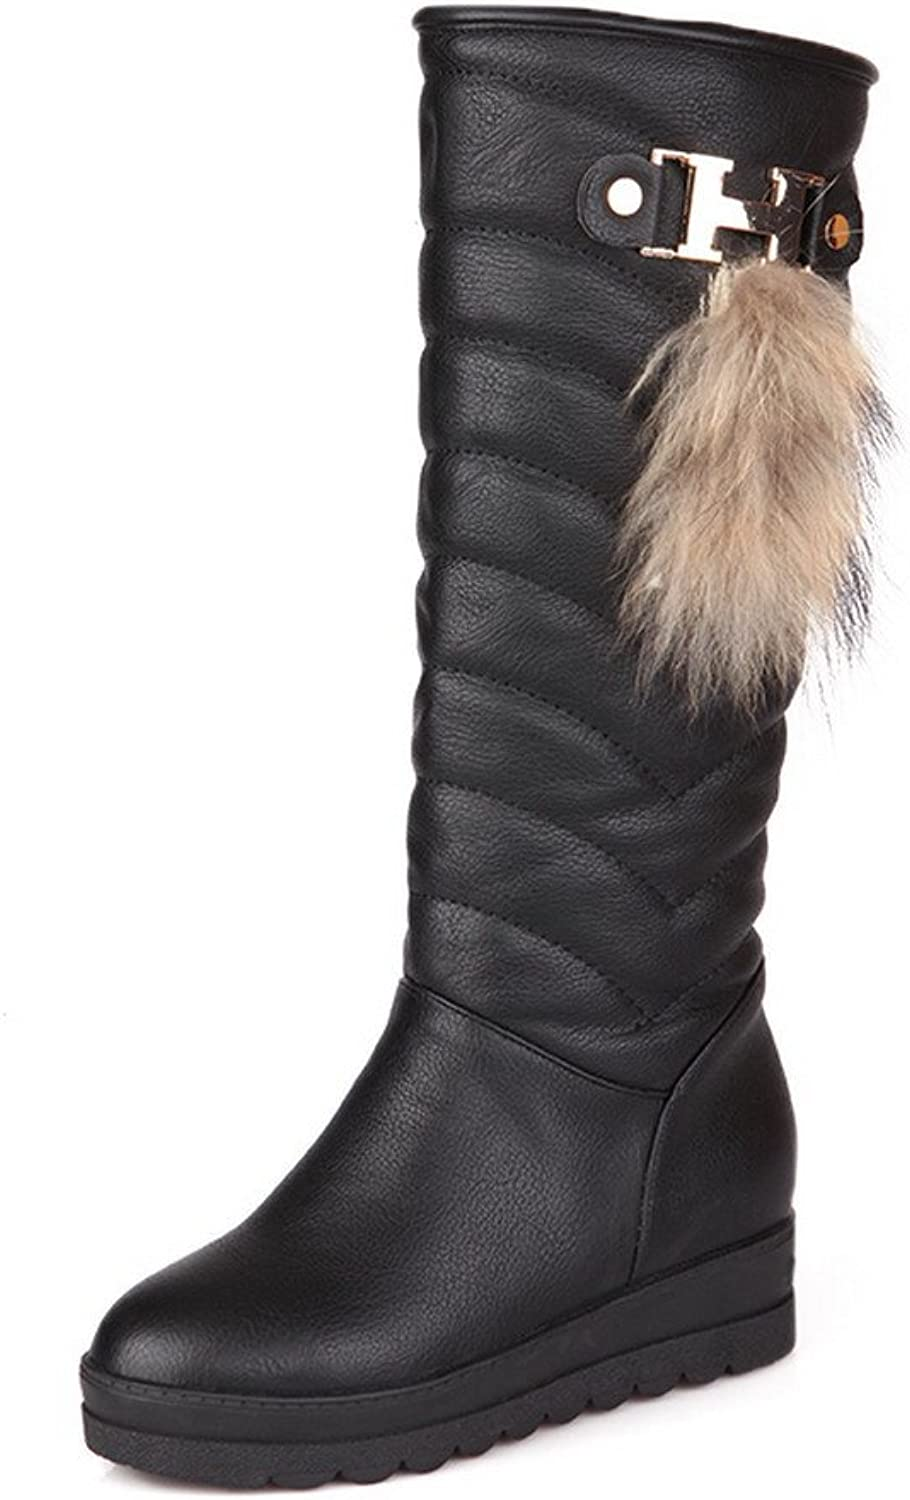 WeenFashion Womens Round Toe Kitten Heels PU Solid Boot with Metal Piece, Black, 5 B(M) US